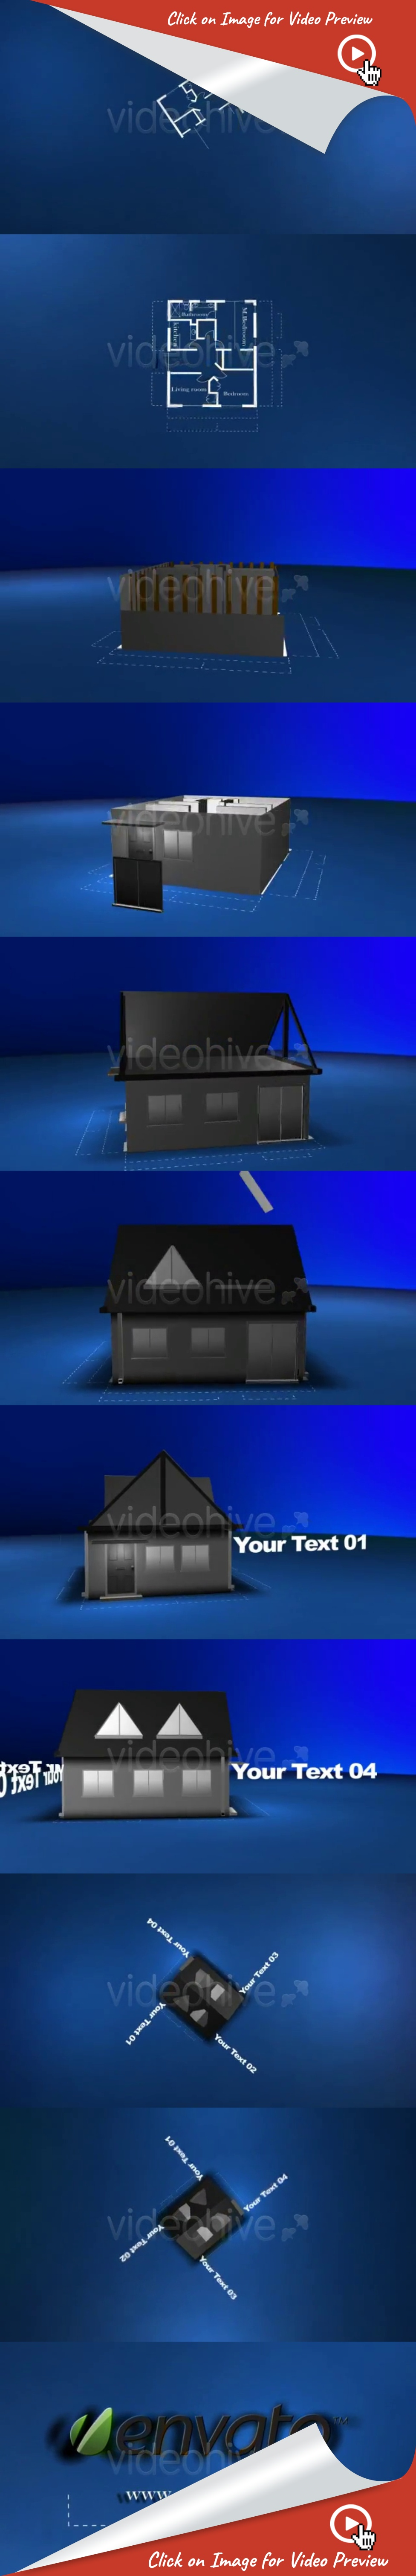 Blueprint project building a house motion graphics and logos buy blueprint project building a house by macmacer on videohive from blueprint plan to a house one minute animation of house been built and dismantled in malvernweather Images